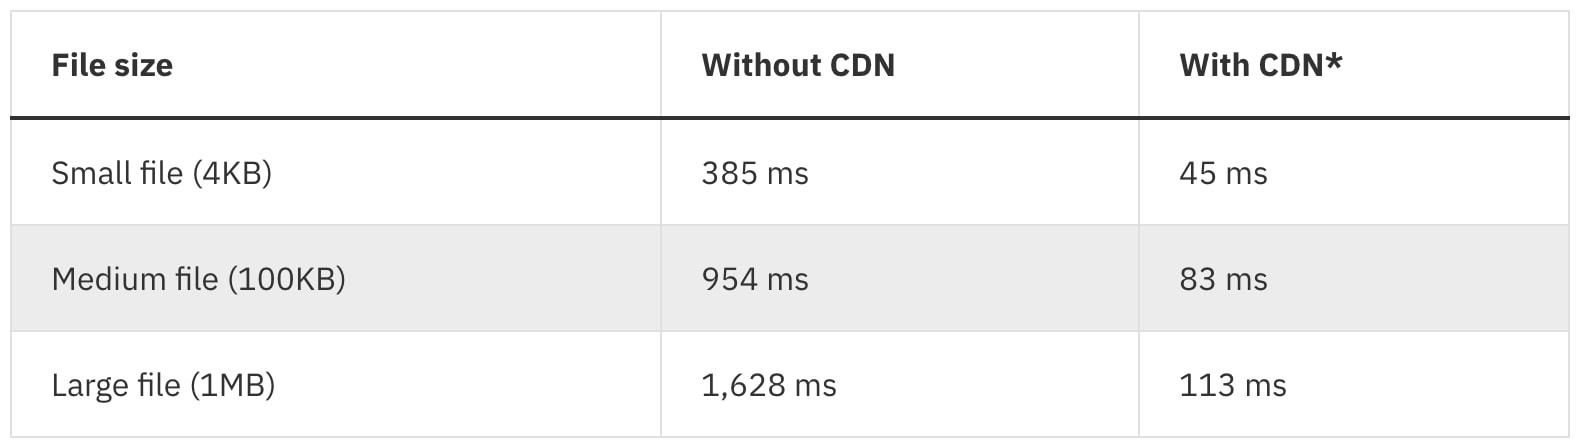 IBM Cloud CDN performed